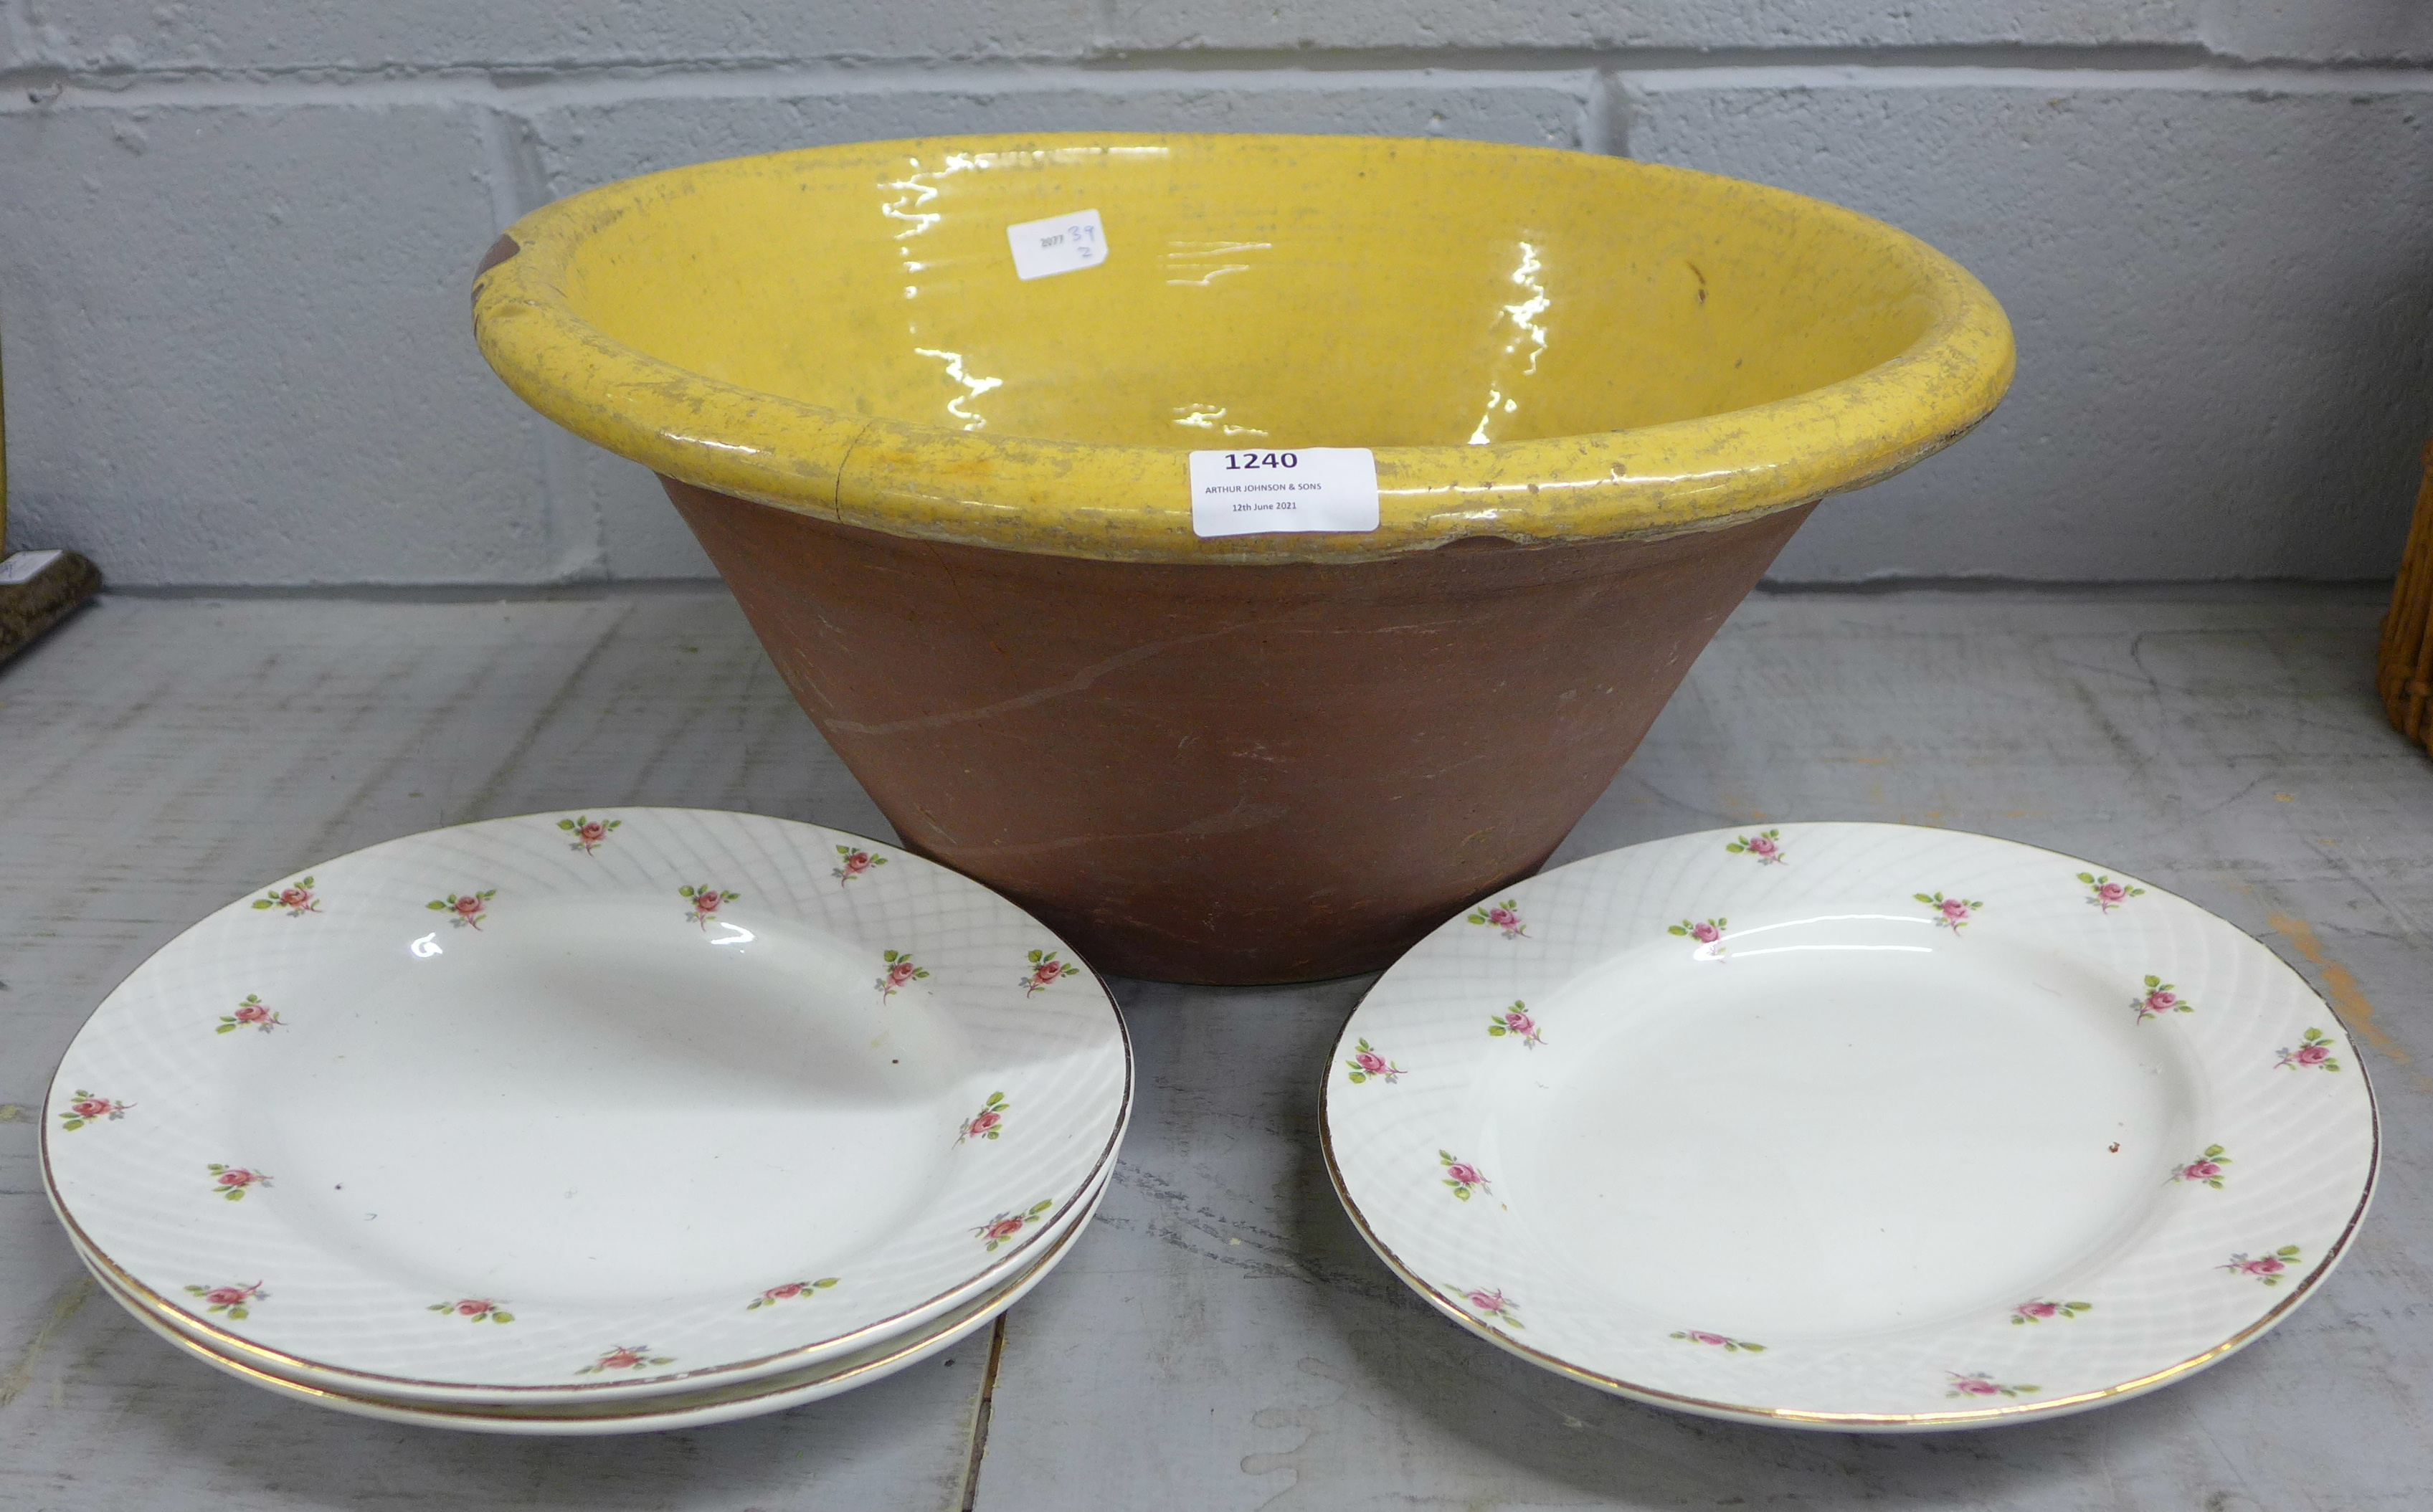 A pancheon, tins and other kitchenalia **PLEASE NOTE THIS LOT IS NOT ELIGIBLE FOR POSTING AND